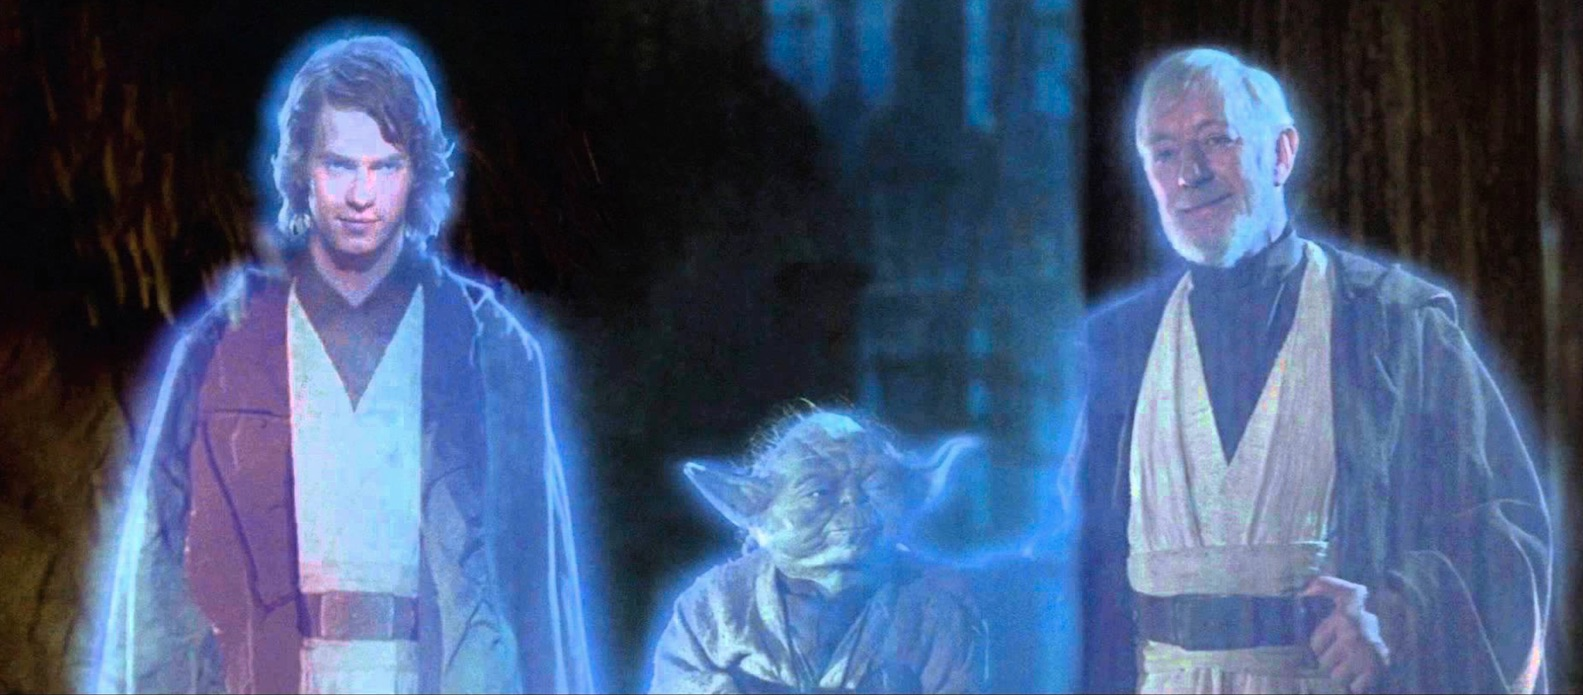 Return of the Jedi - Anakin, Yoda, and Obi-Wan Force Ghosts